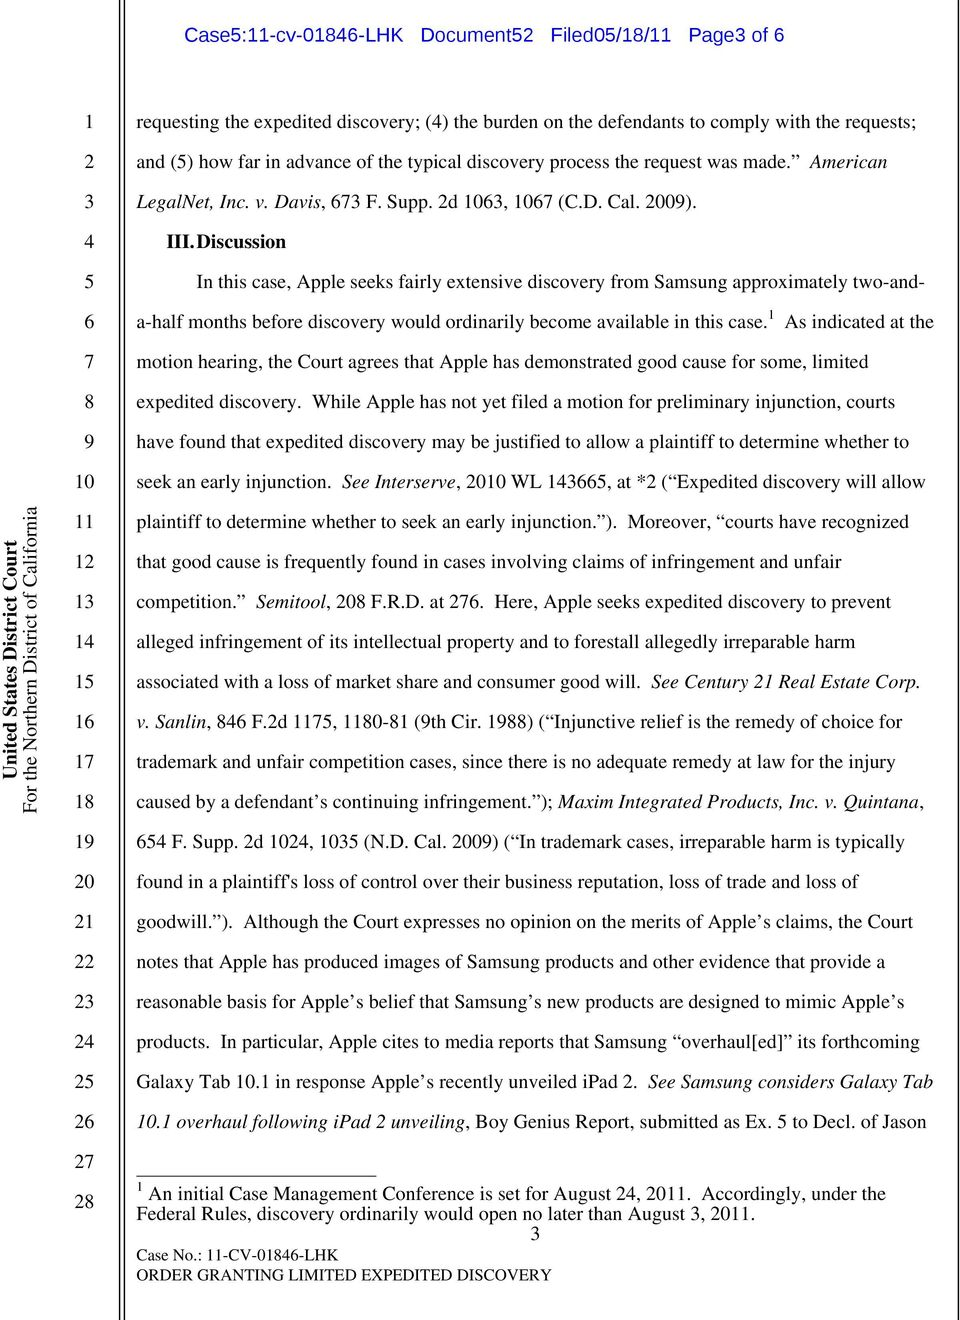 Discussion In this case, Apple seeks fairly extensive discovery from Samsung approximately two-anda-half months before discovery would ordinarily become available in this case.